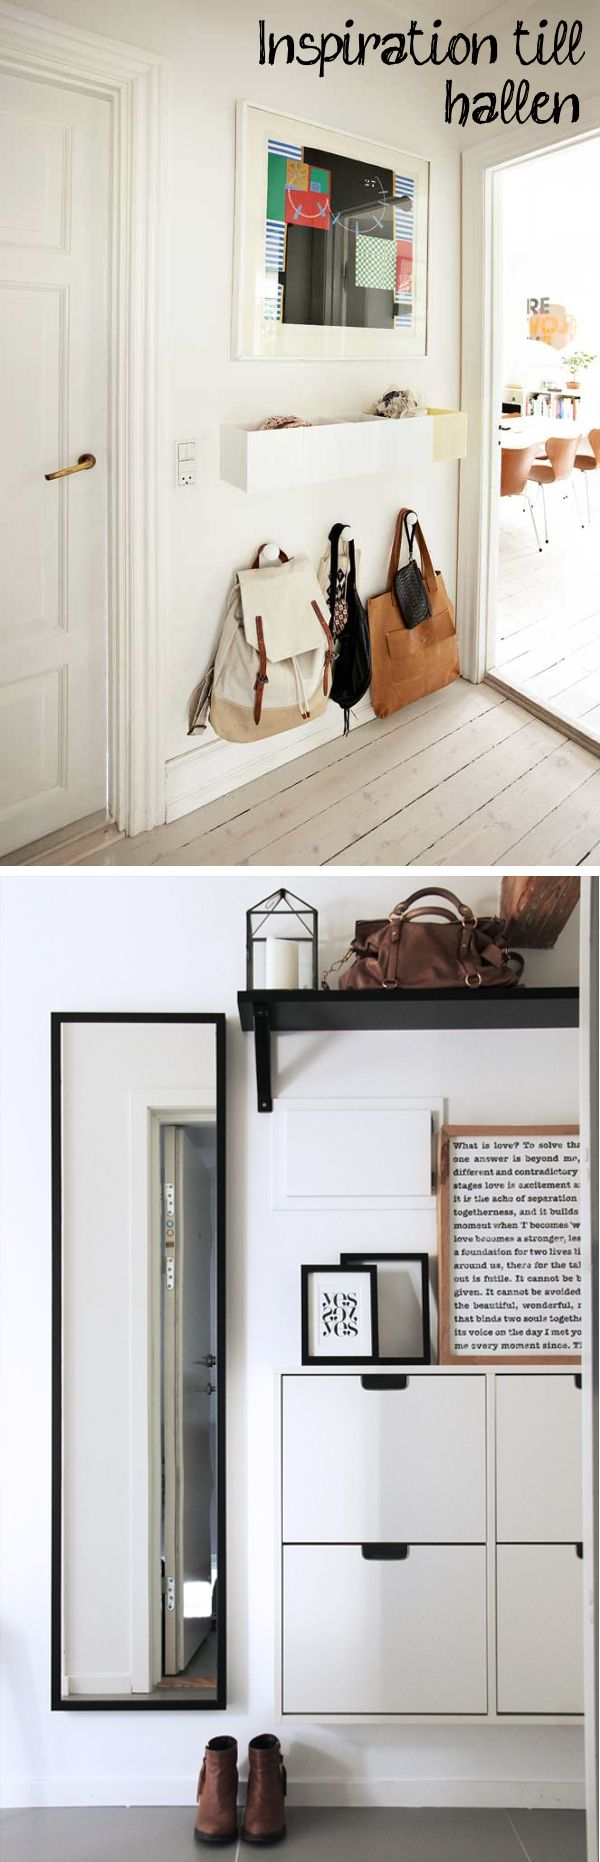 Low level bag and small person coat storage in the hallway